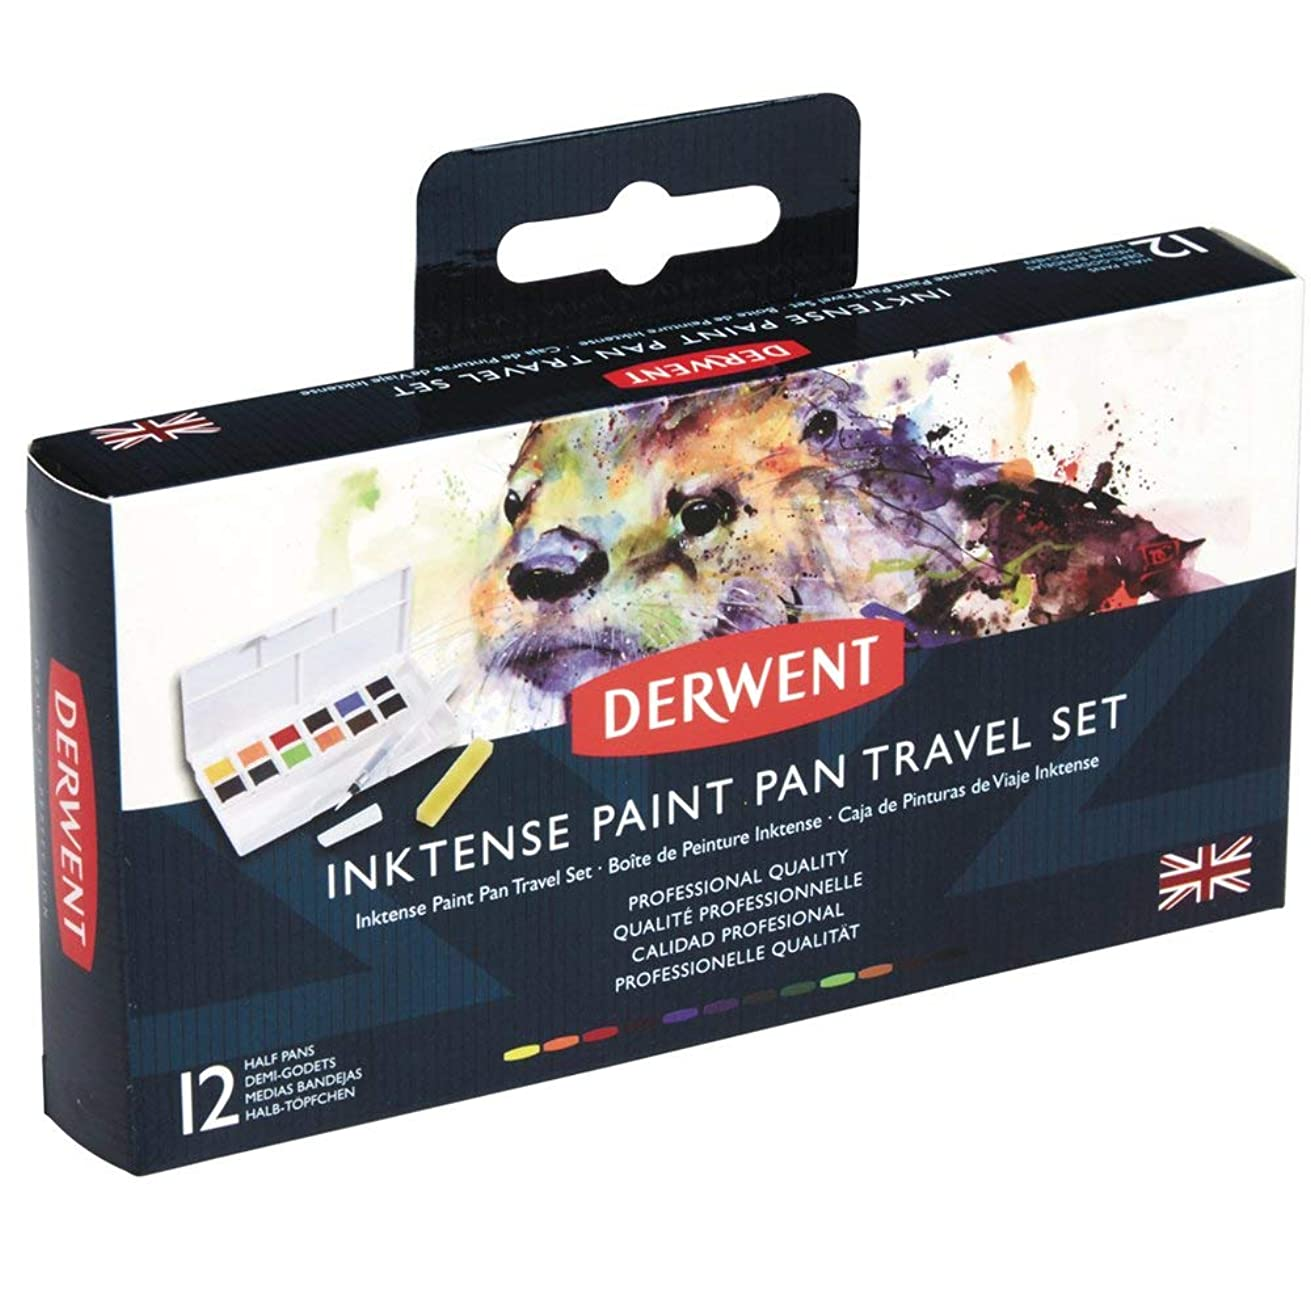 Derwent Inktense Watercolor Paint Set, Paint Pan Water Color Travel Set, Includes 12 Vibrant Colors, Water Brush and Sponge, Art Supplies (2302636)